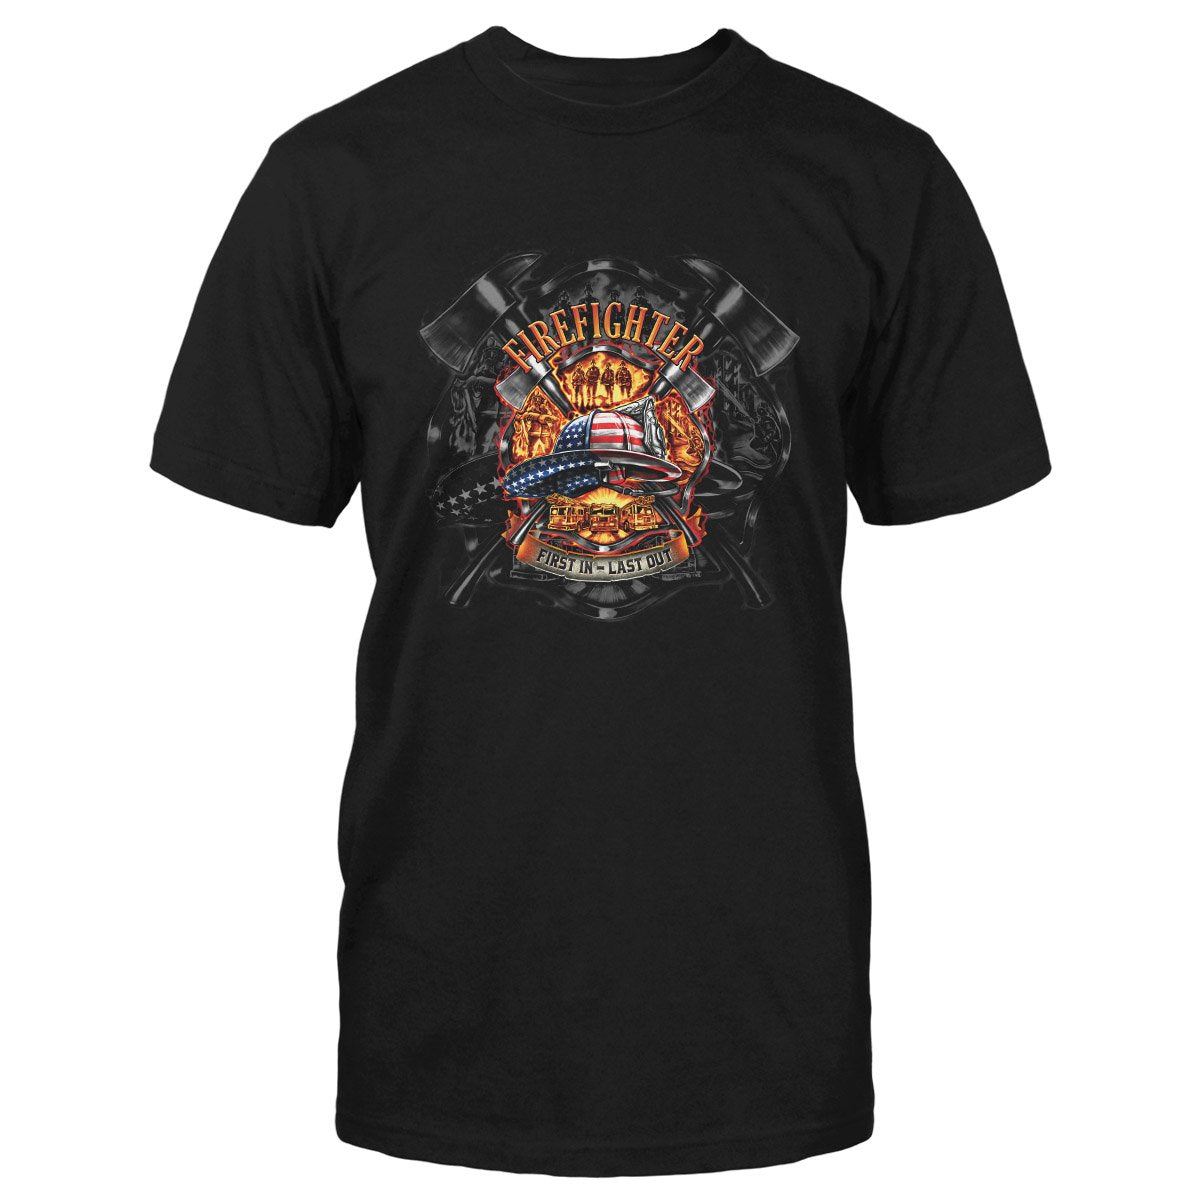 Firefighter American Hat First In Last Out EZ24 0412 Classic T-shirt